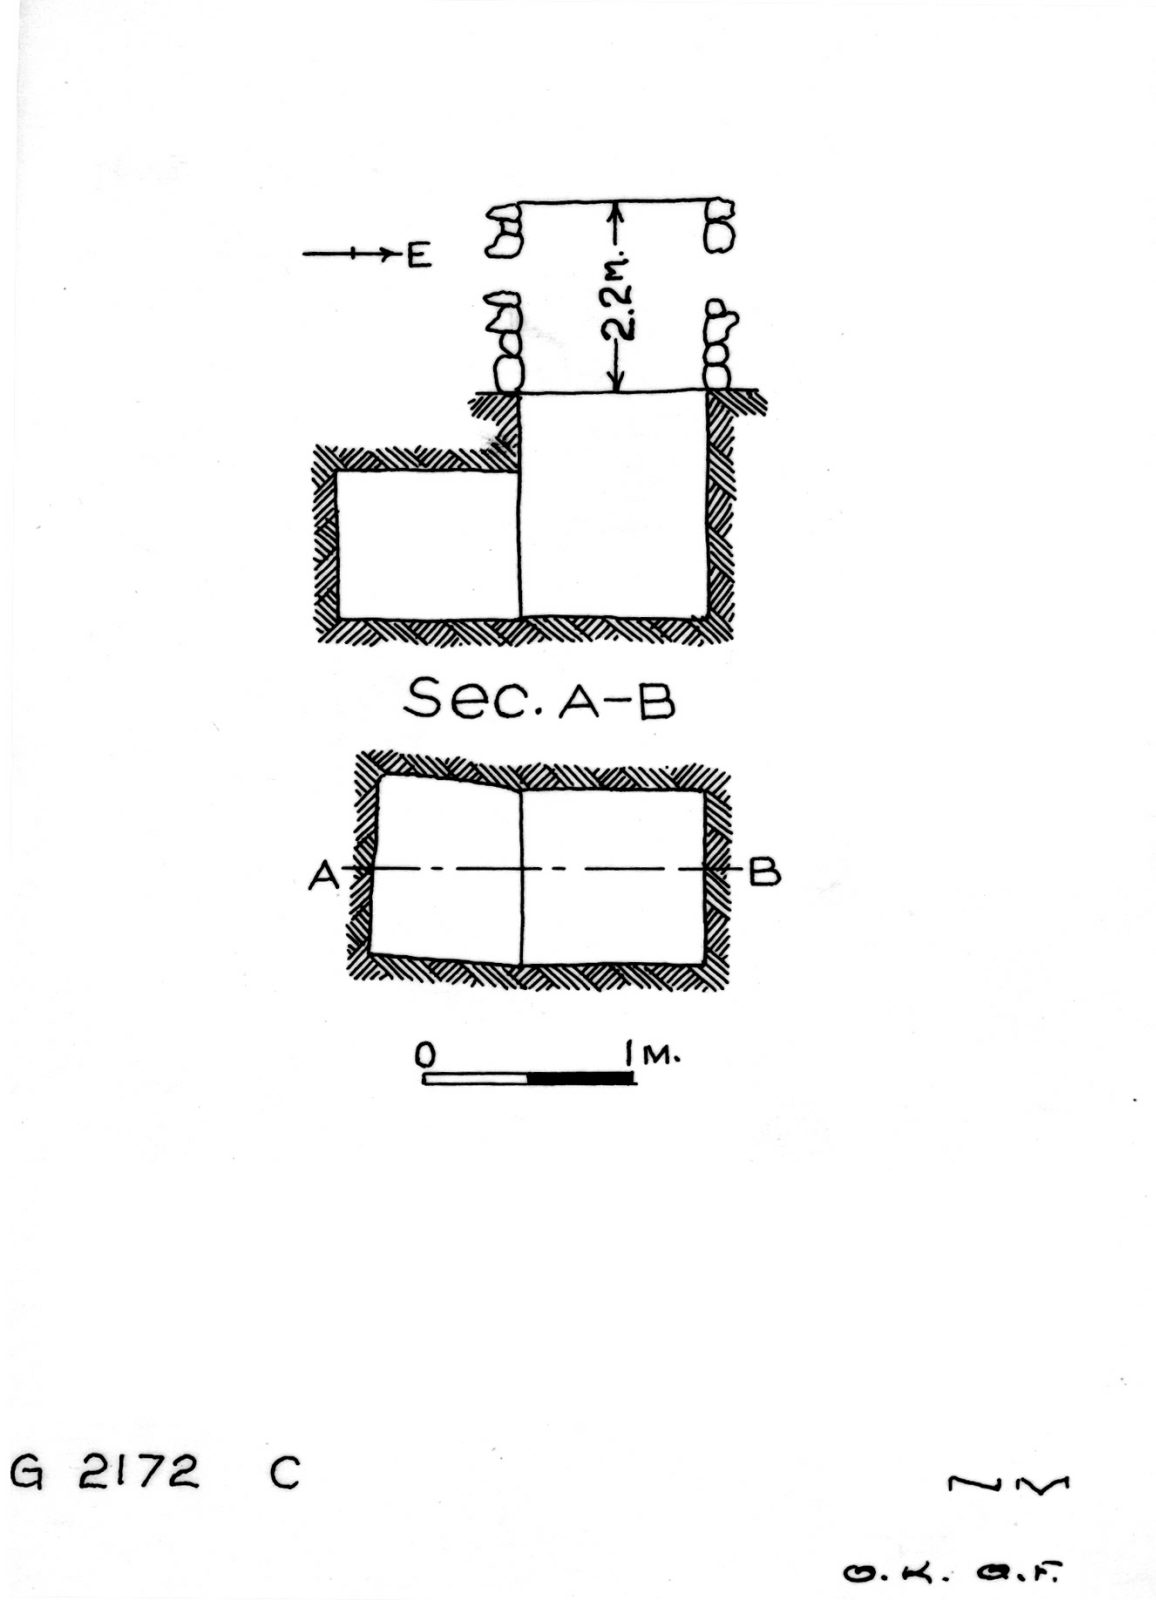 Maps and plans: G 2172, Shaft C